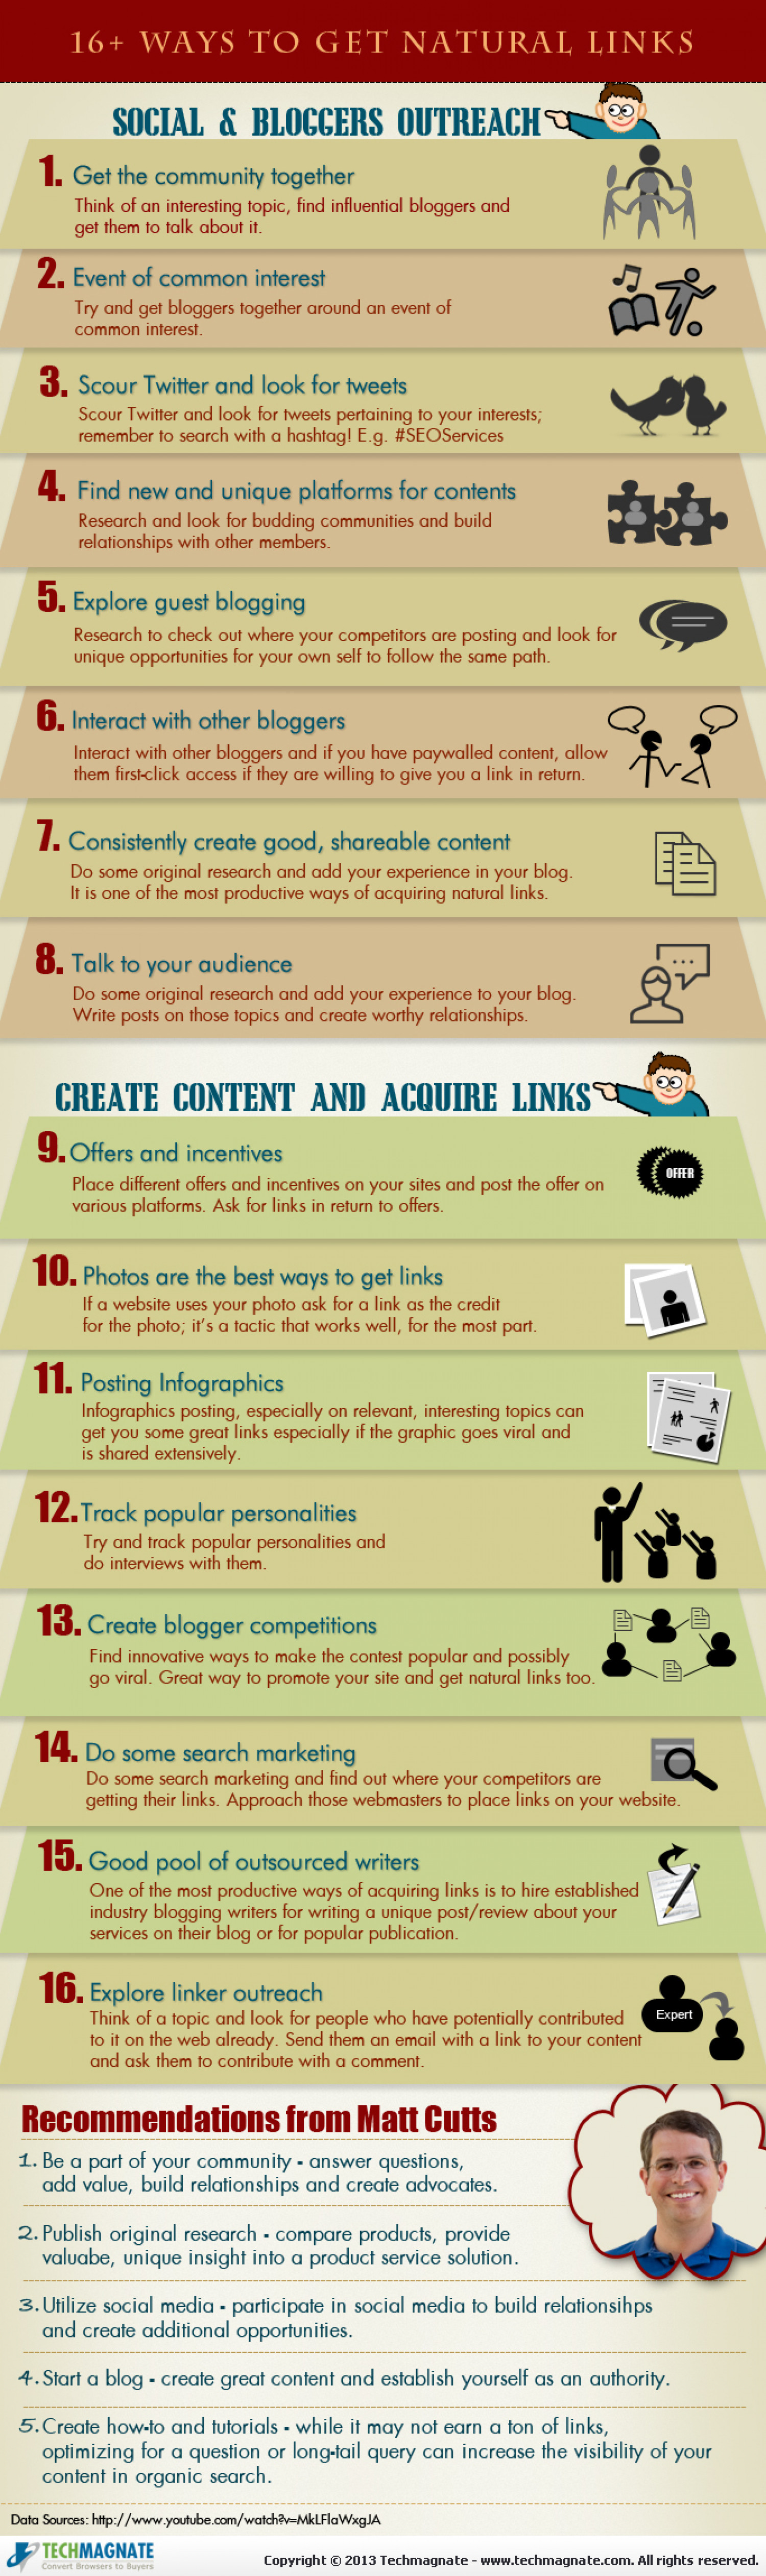 16+ Ways to Get Natural Links Infographic